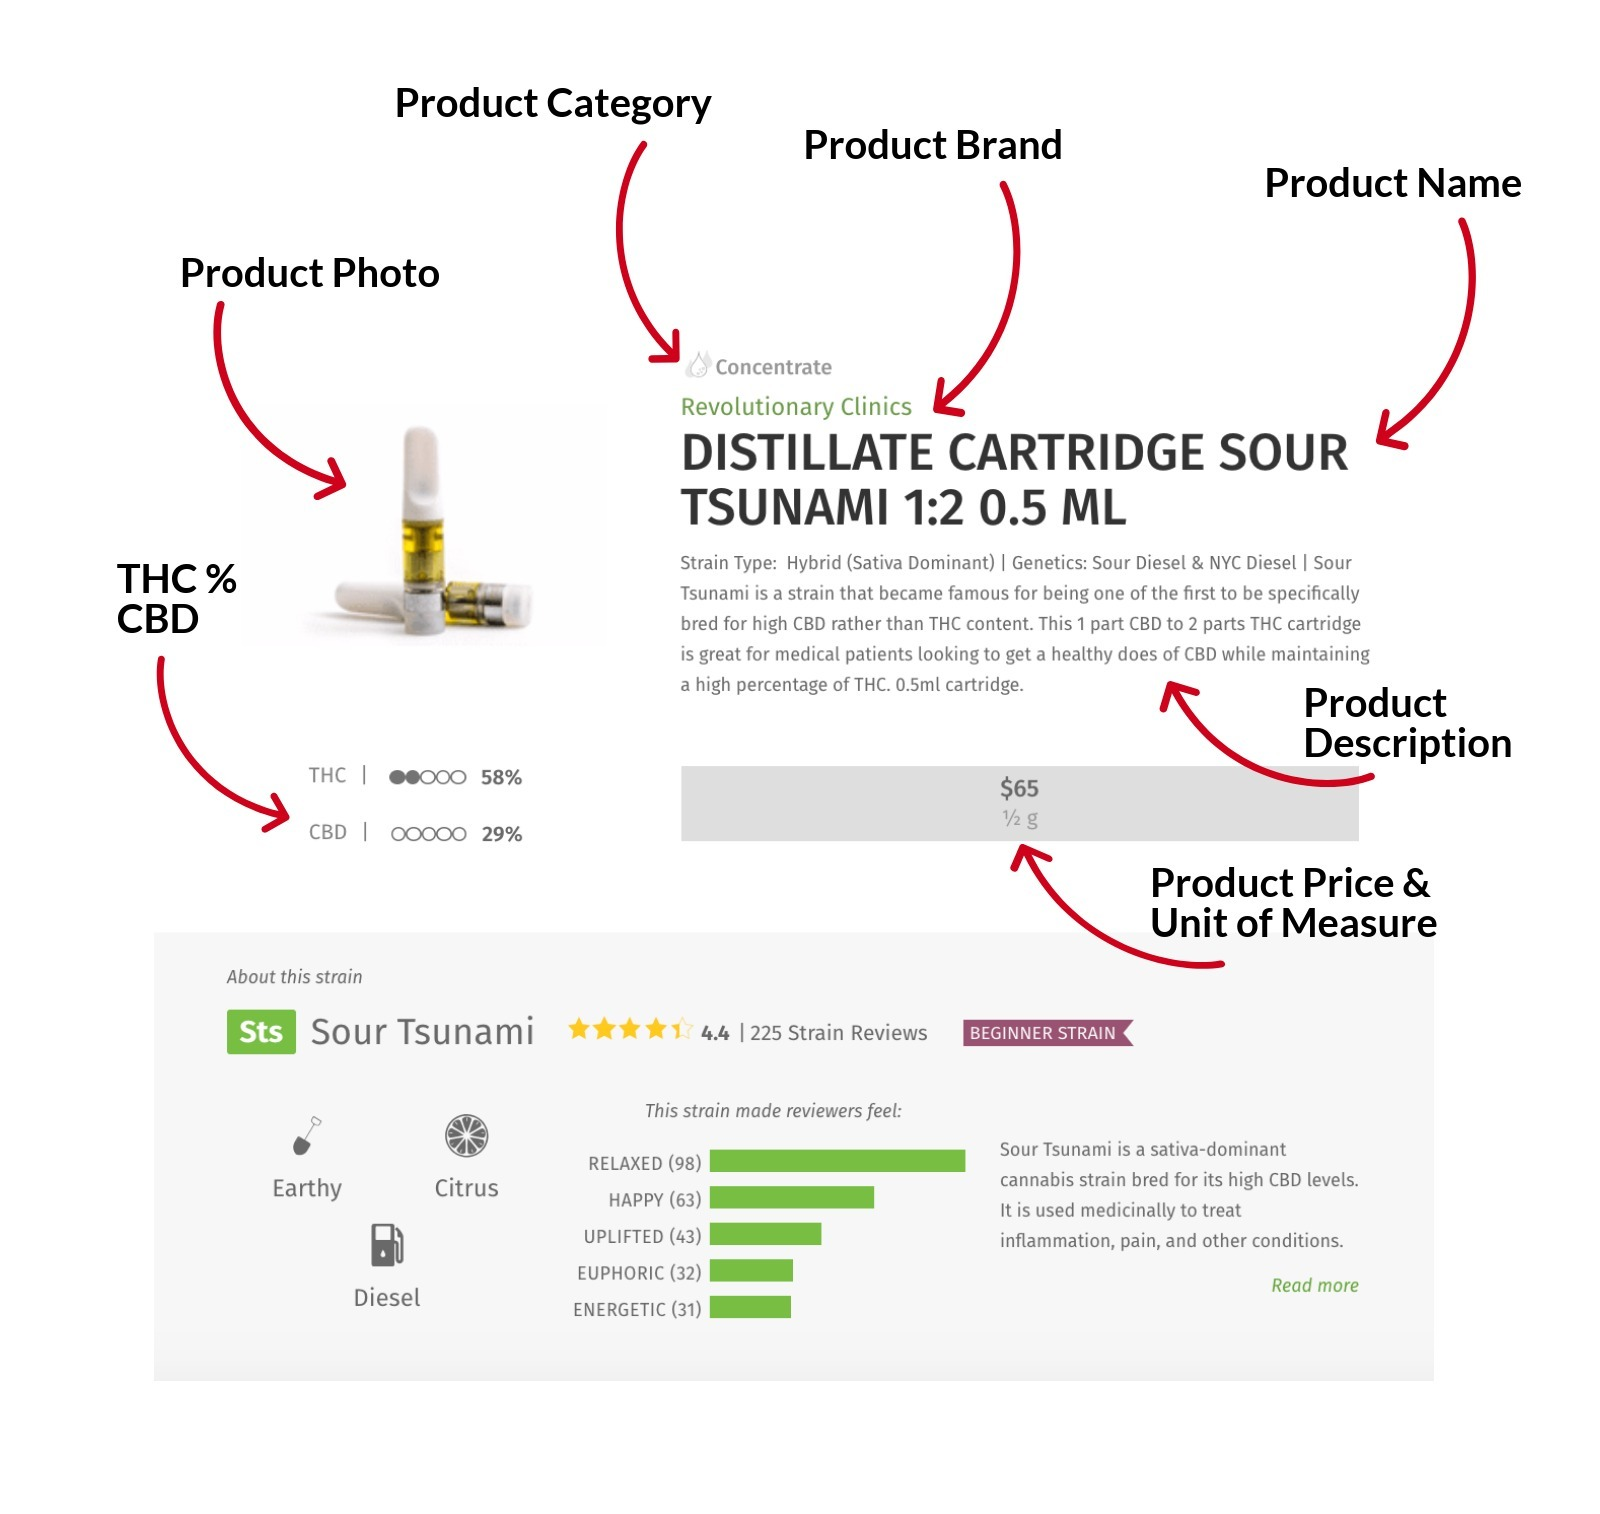 Complete Leafly Product Profile